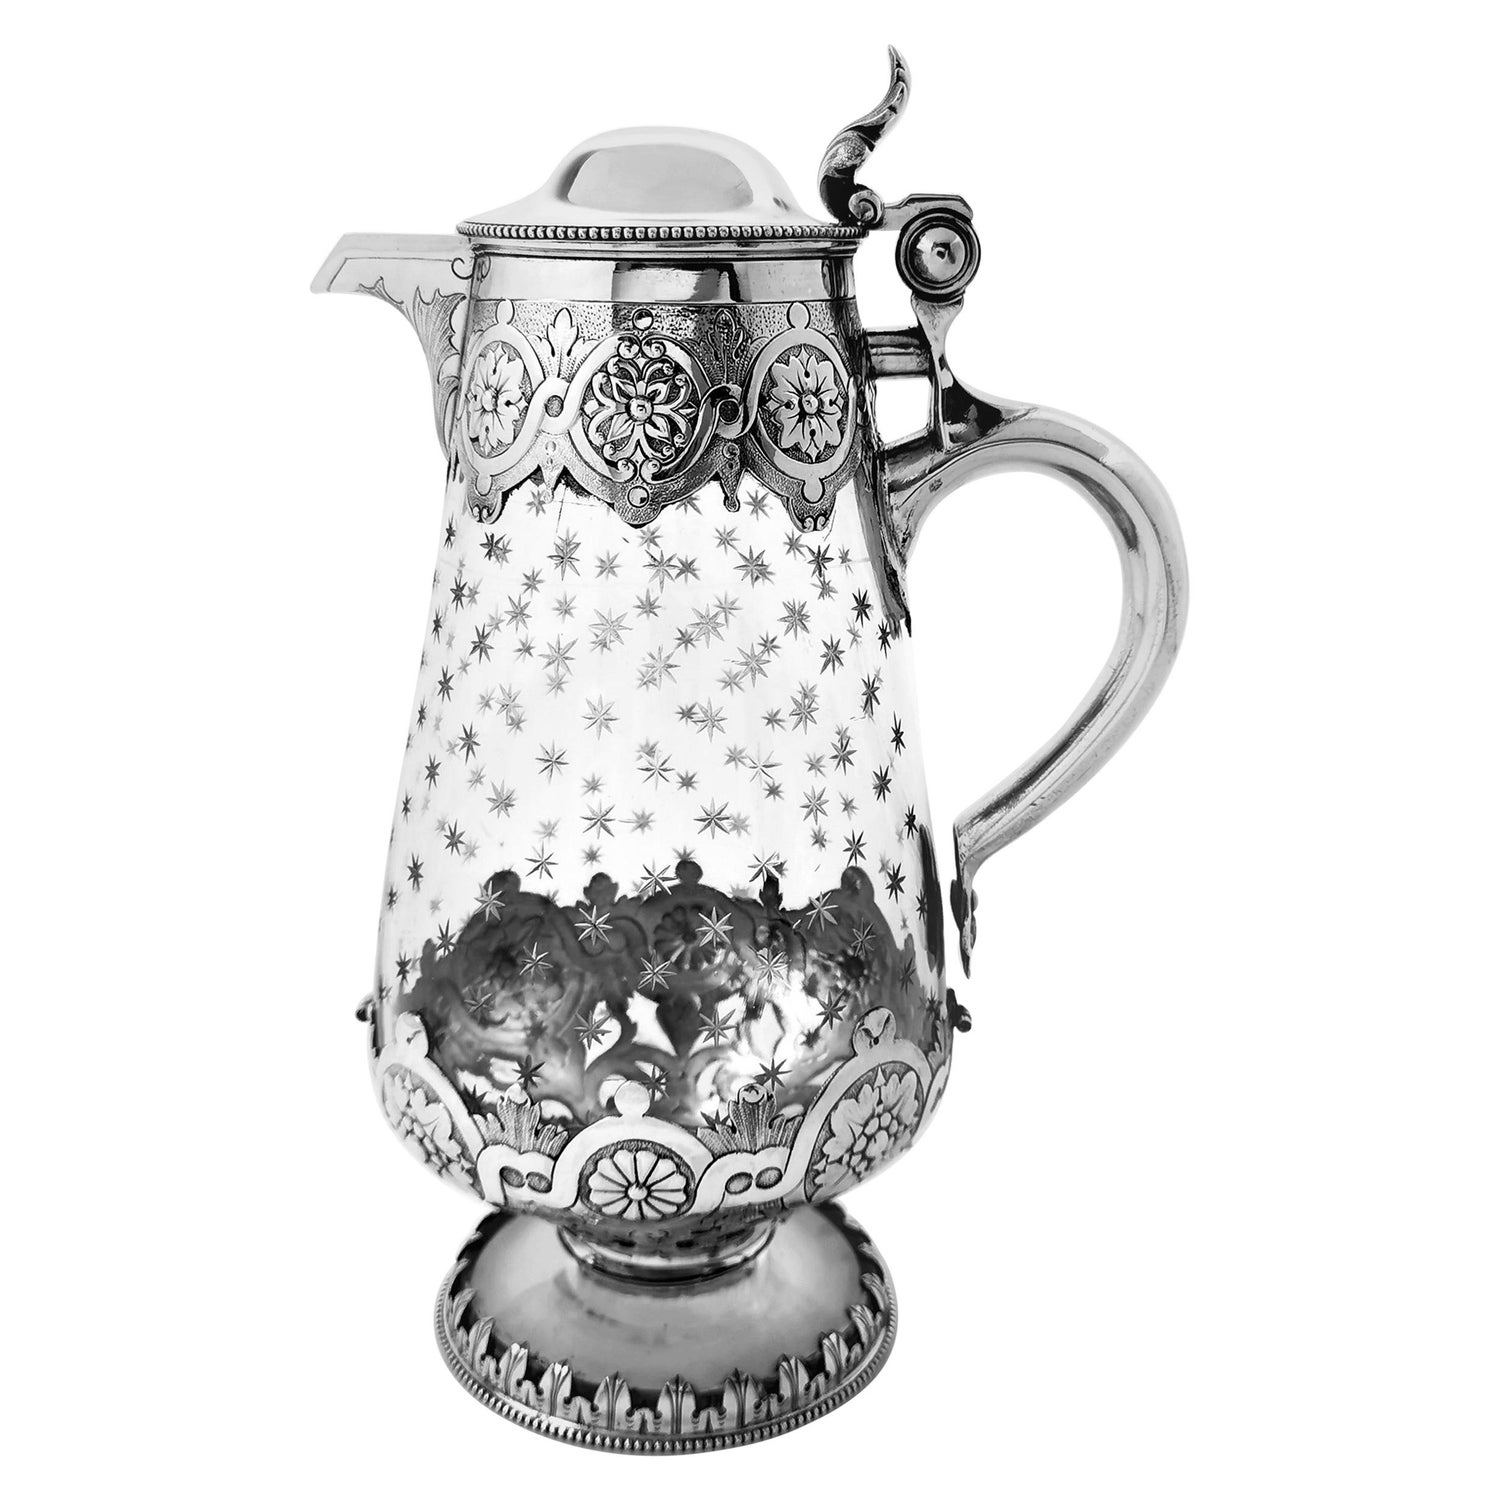 Antique Victorian Sterling Silver and Cut Glass Claret Jug / Wine Decanter, 1881